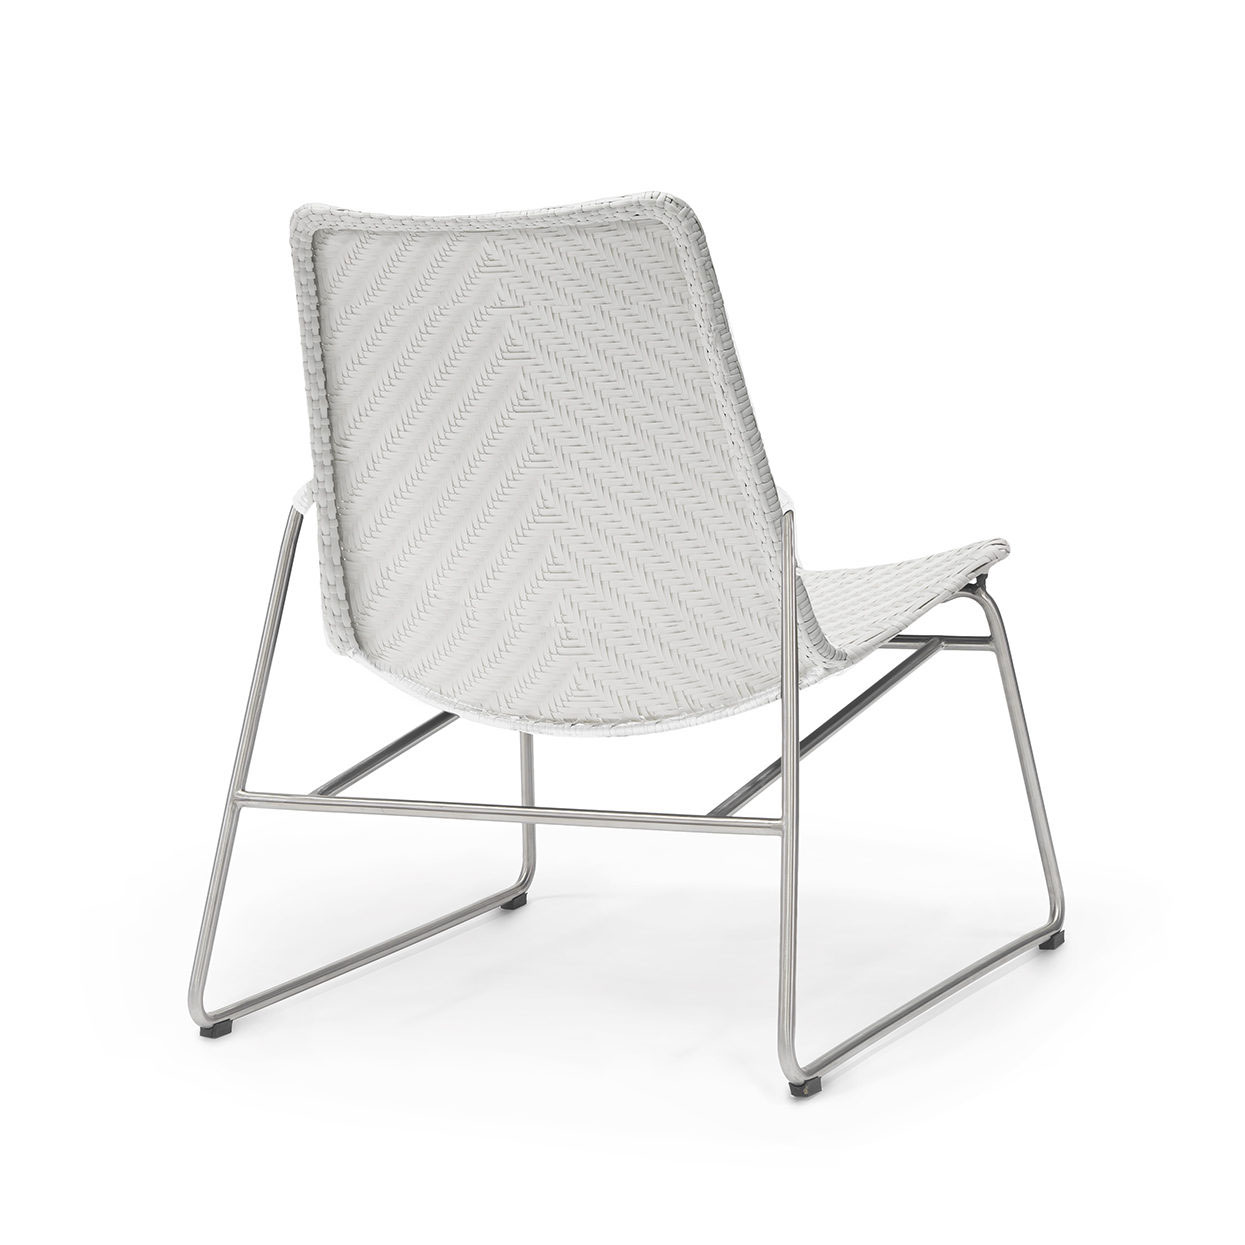 Bergman-Outdoor-Occasional-Chair-White-1